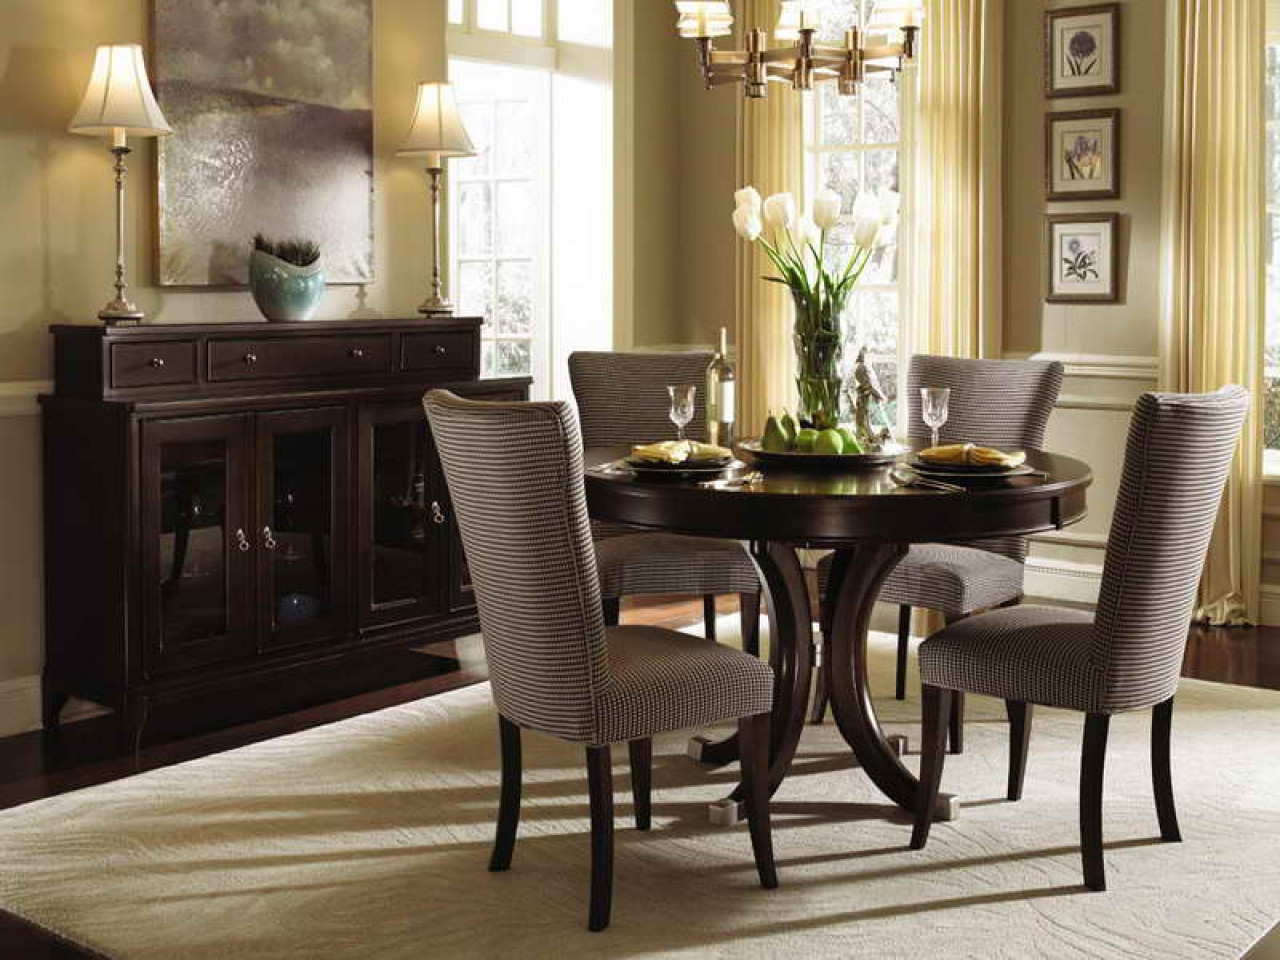 Best ideas about Small Dining Room Sets . Save or Pin Small Room Design small round dining room tables Small Now.